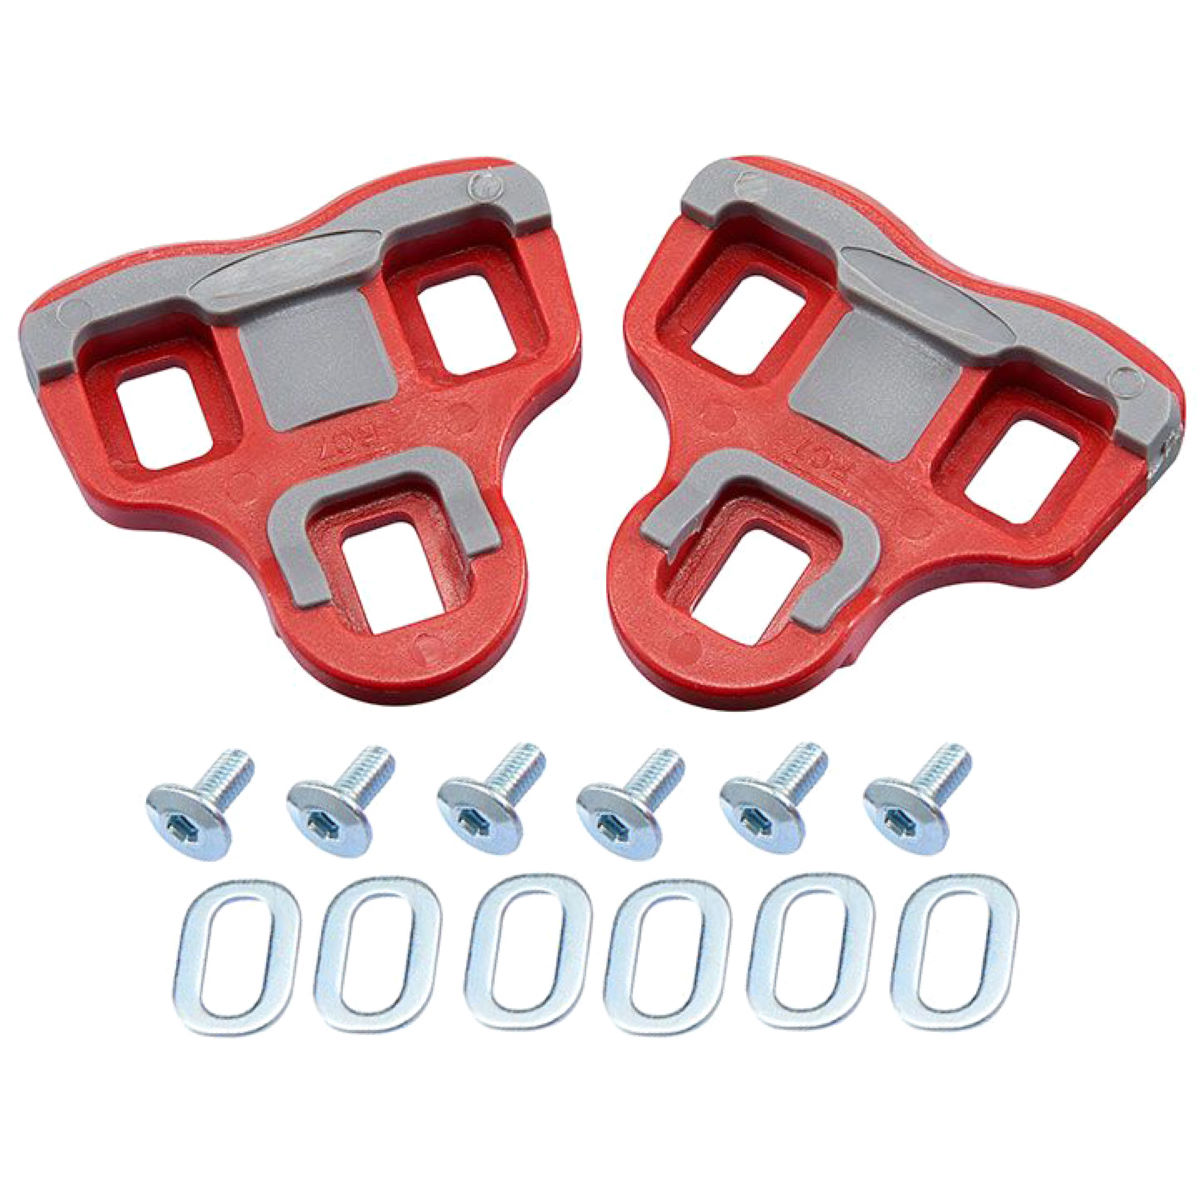 Ritchey Ritchey Pedal Cleats for WCS Echelon   Cleats